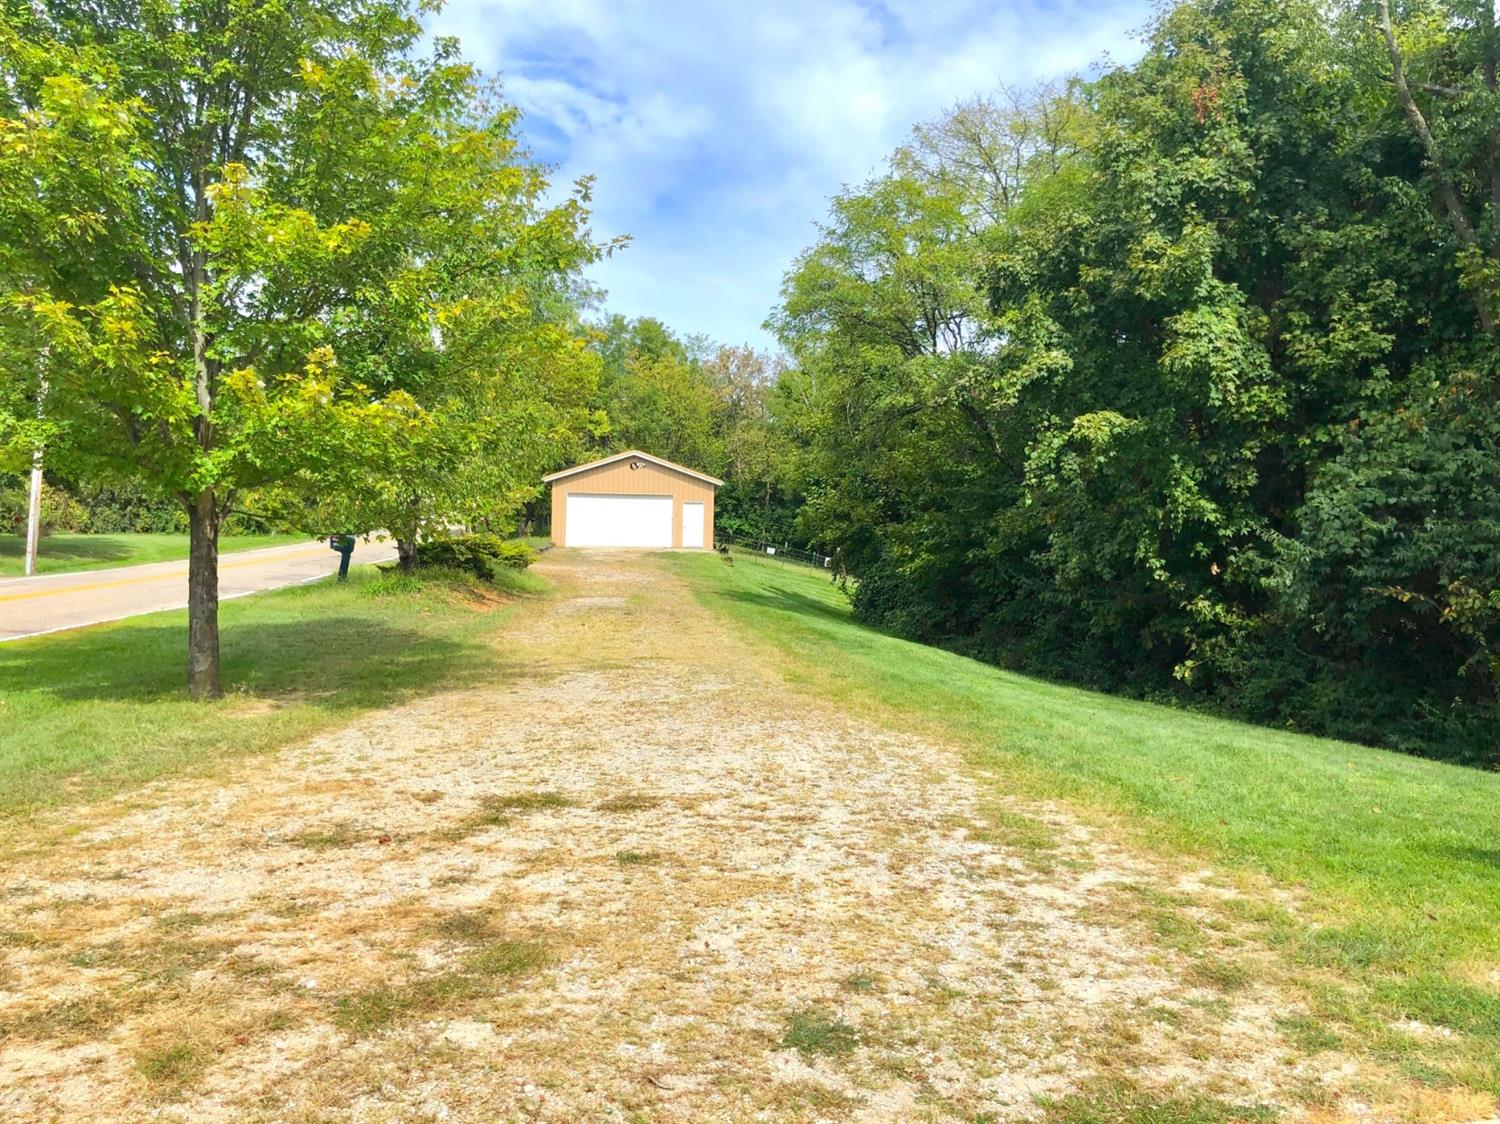 Photo 3 for 11020 Bond Rd Whitewater Twp., OH 45030